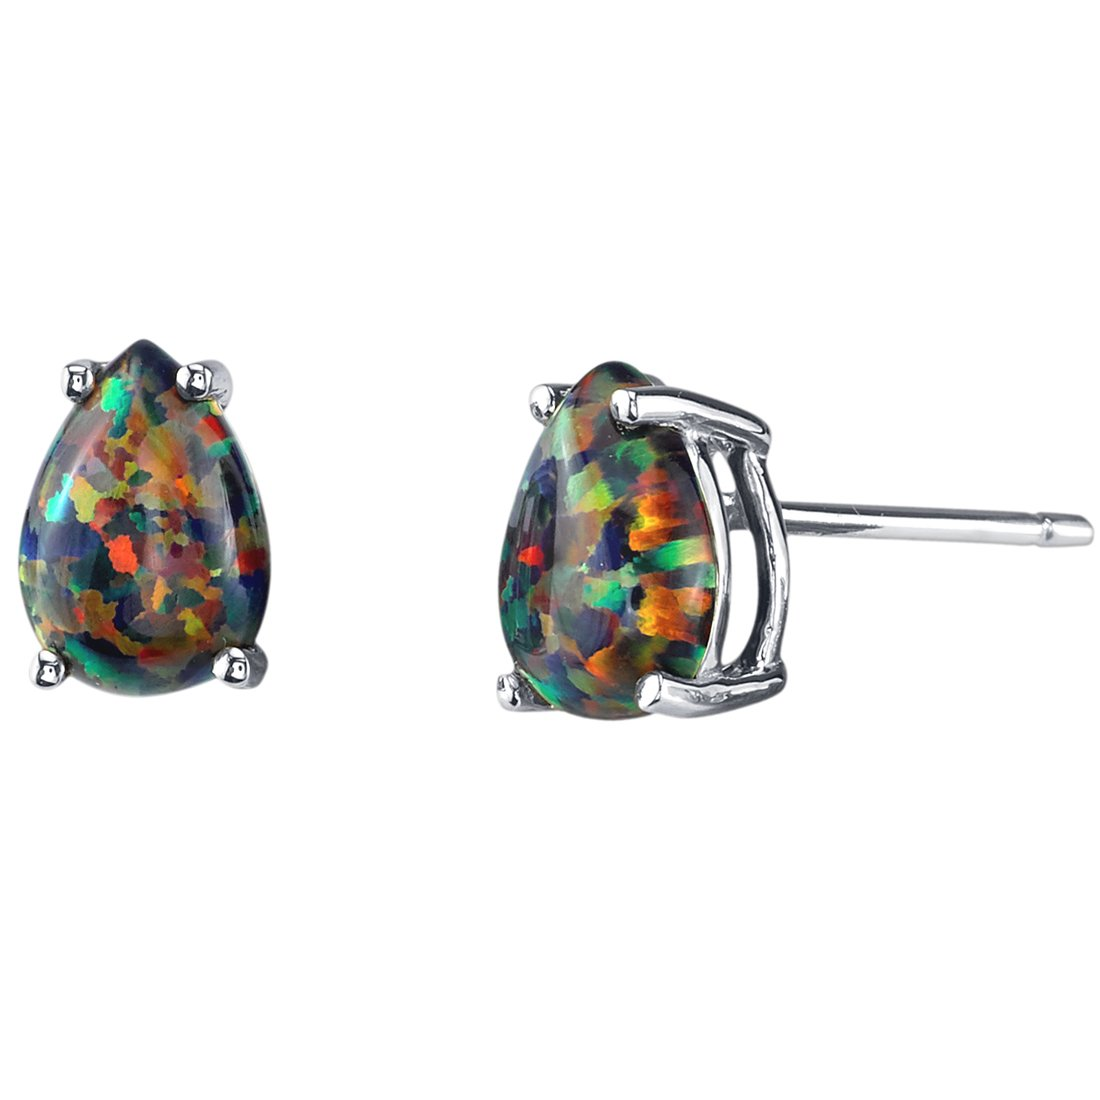 73371e9bf Earrings are made of 14 Karat White Gold Earrings Feature Stud Posts with  Secure Friction Backings Exclusive Craftsmanship and Styling